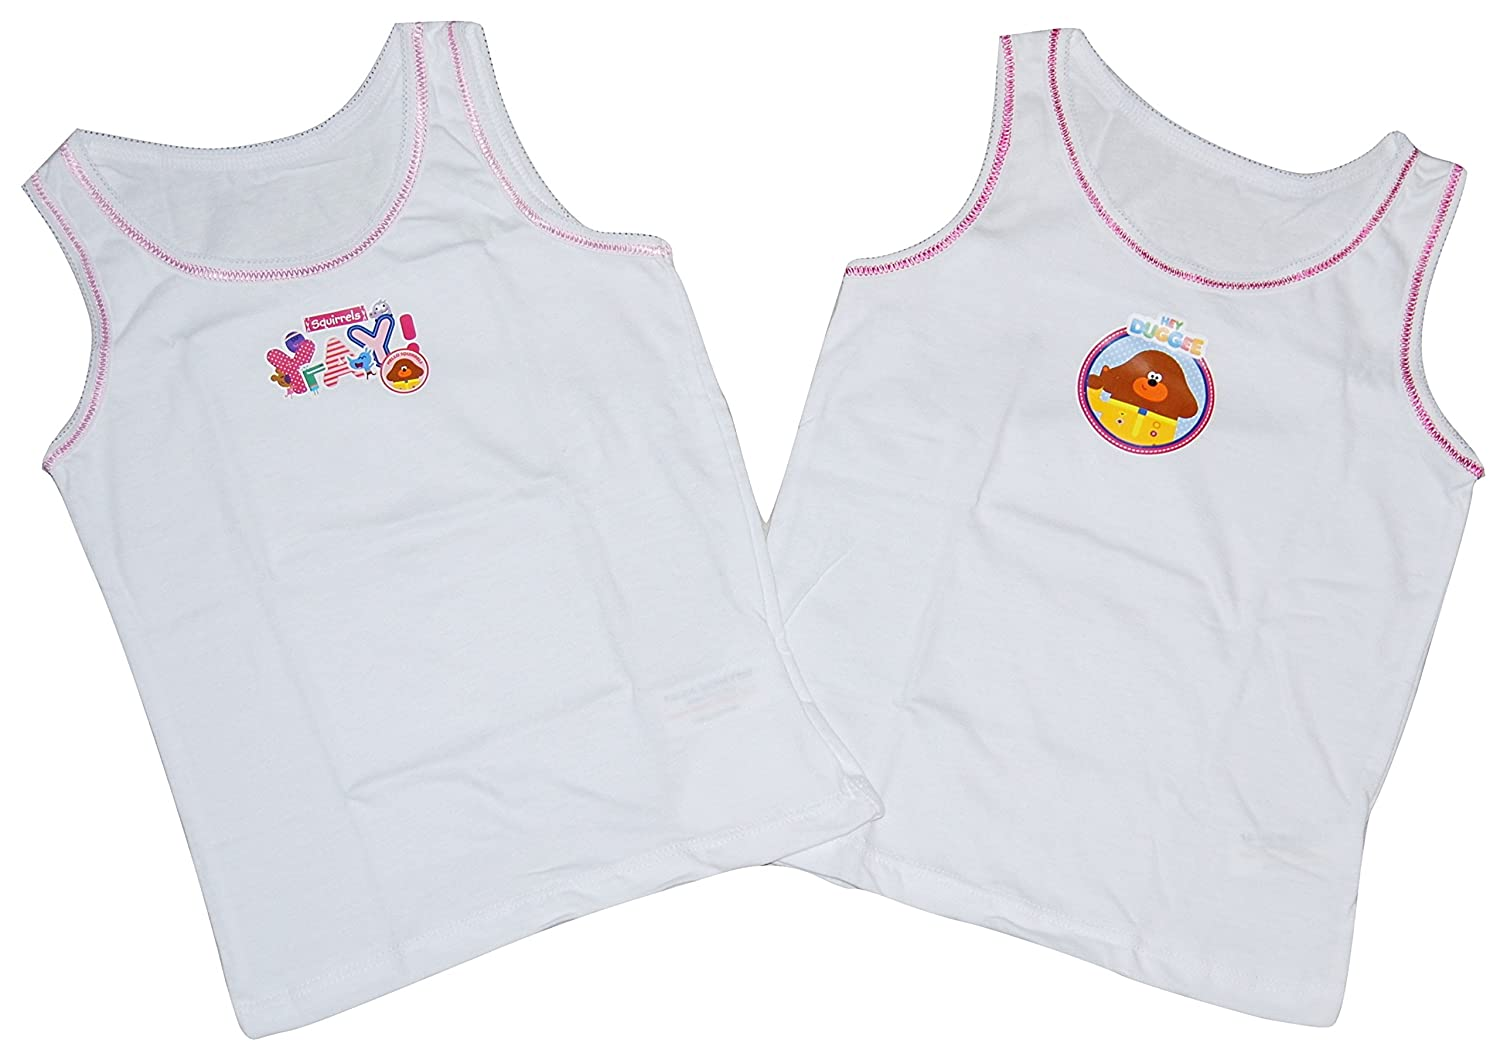 Hey Duggee Girls Vests 2 Pack 18 Months upto 5 Years